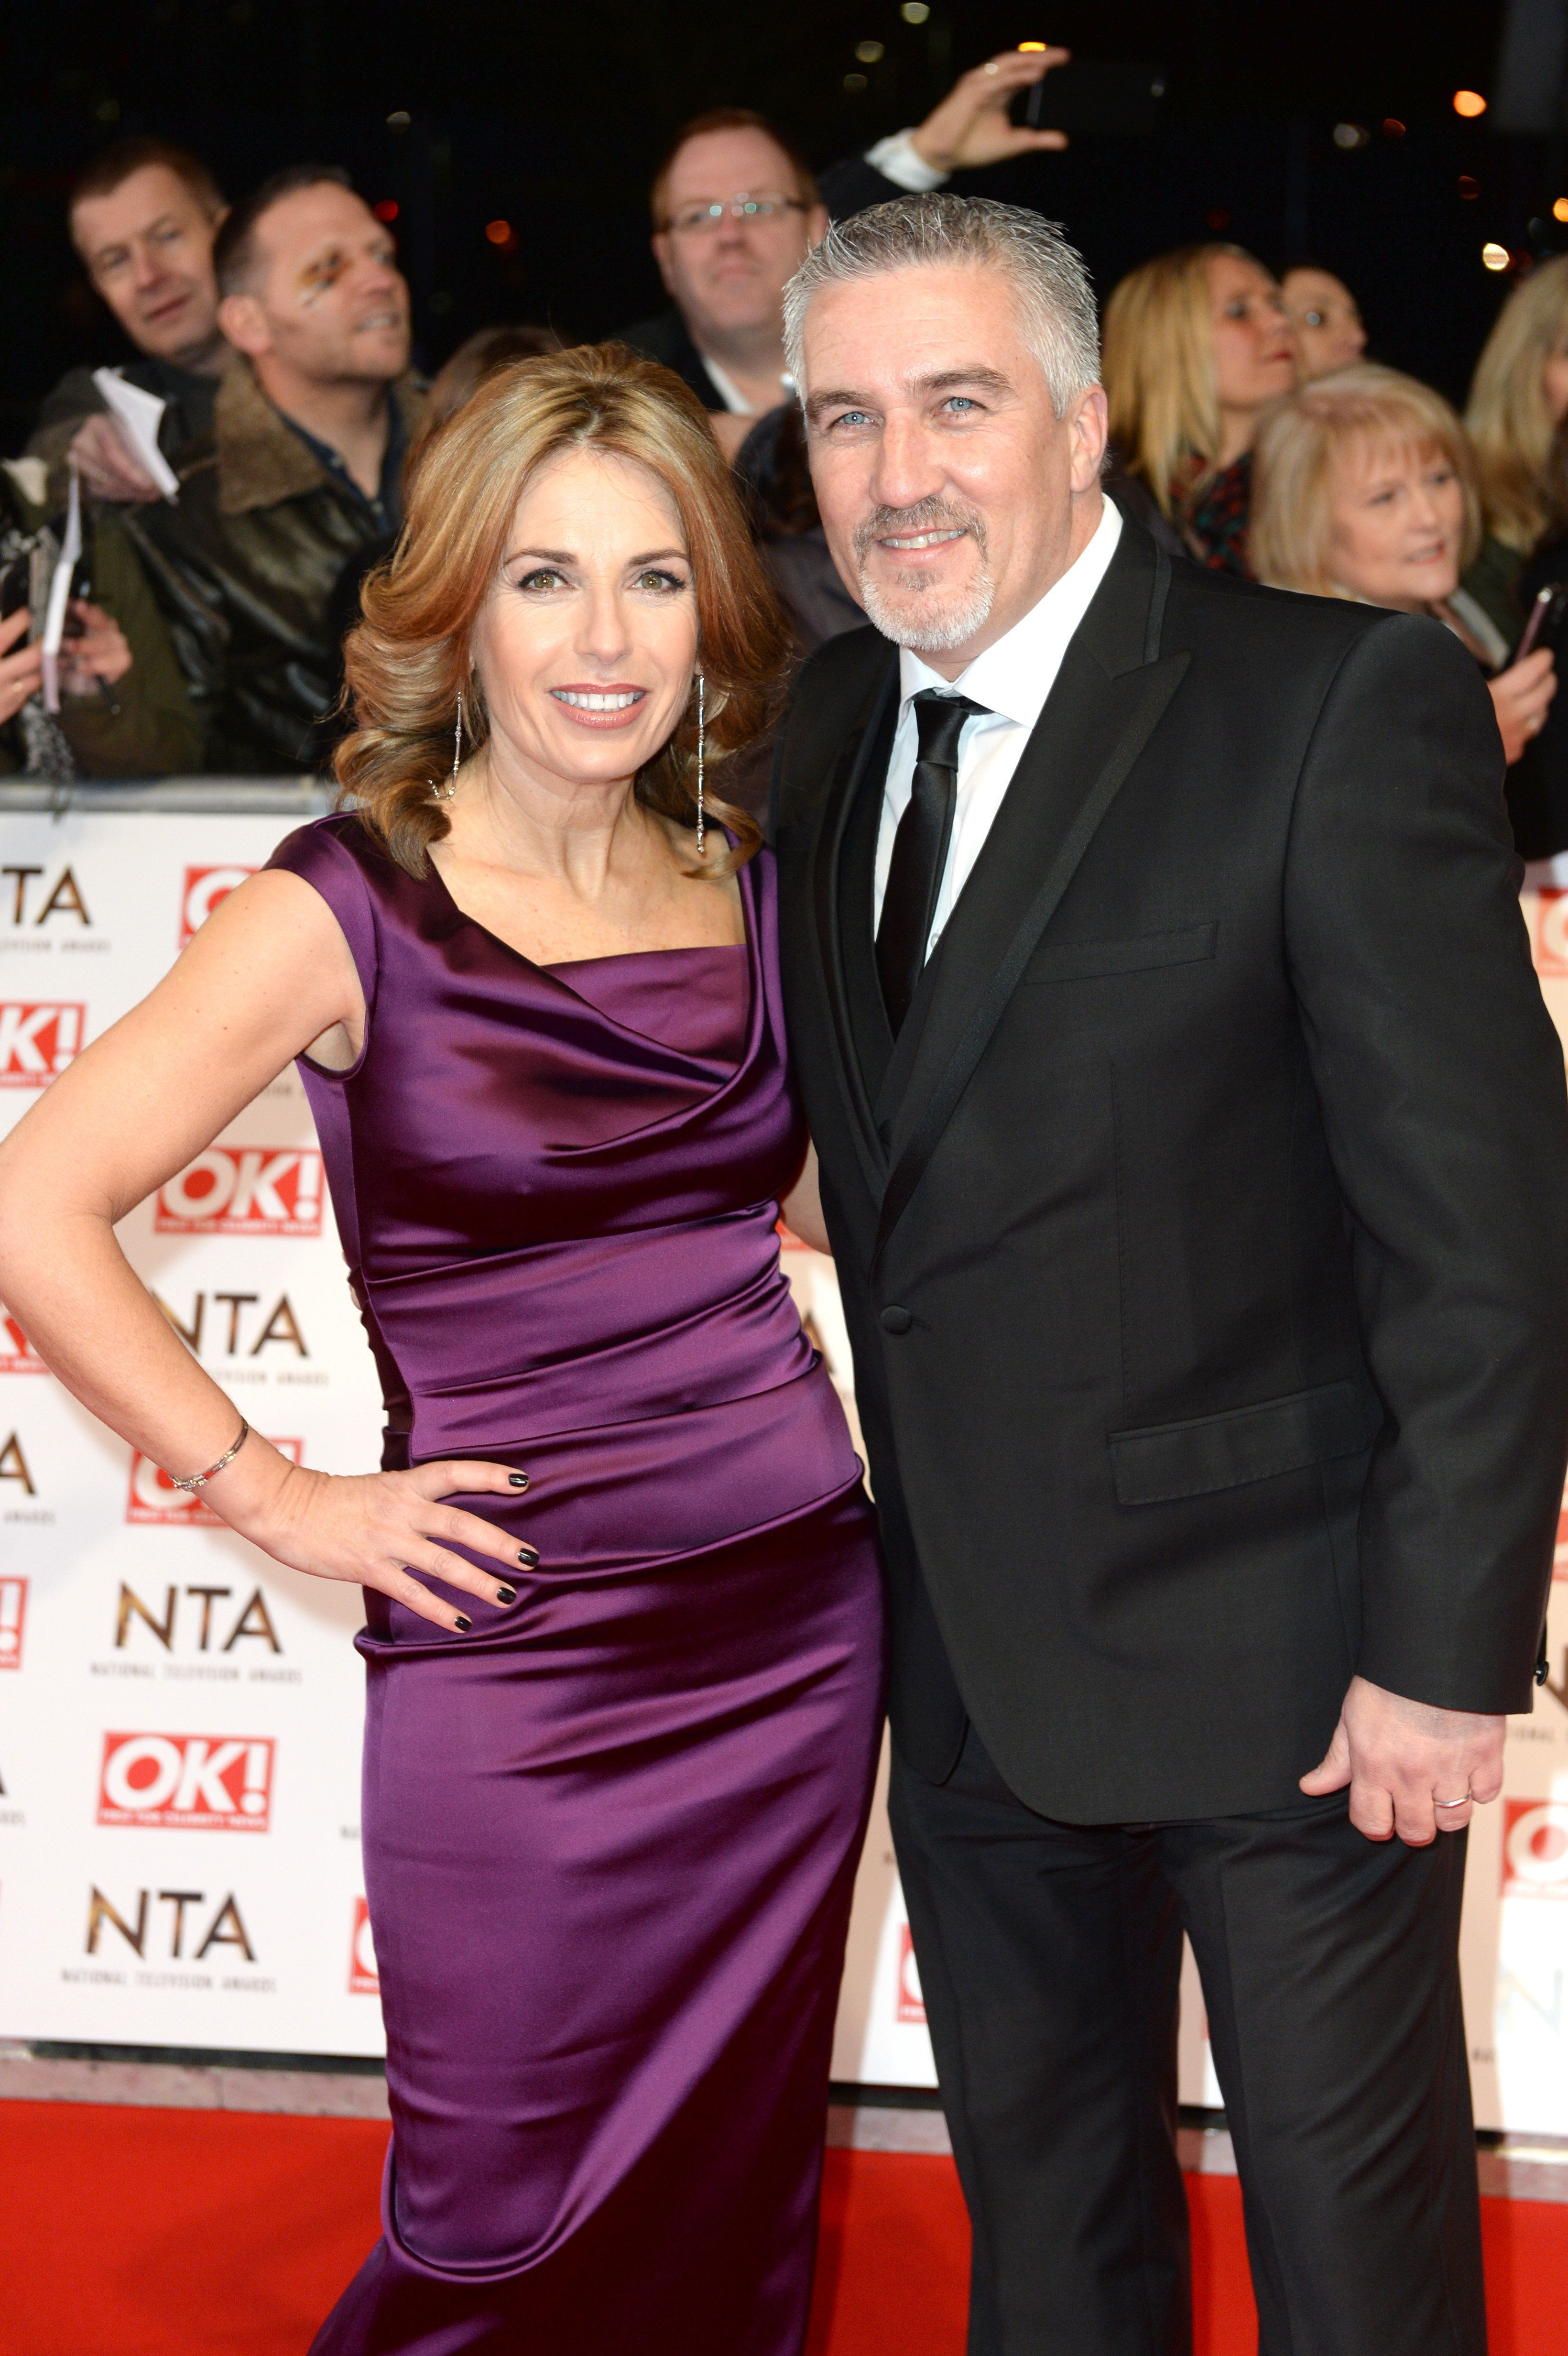 Paul Hollywood Splits From Wife Alexandra After 20 Years Of